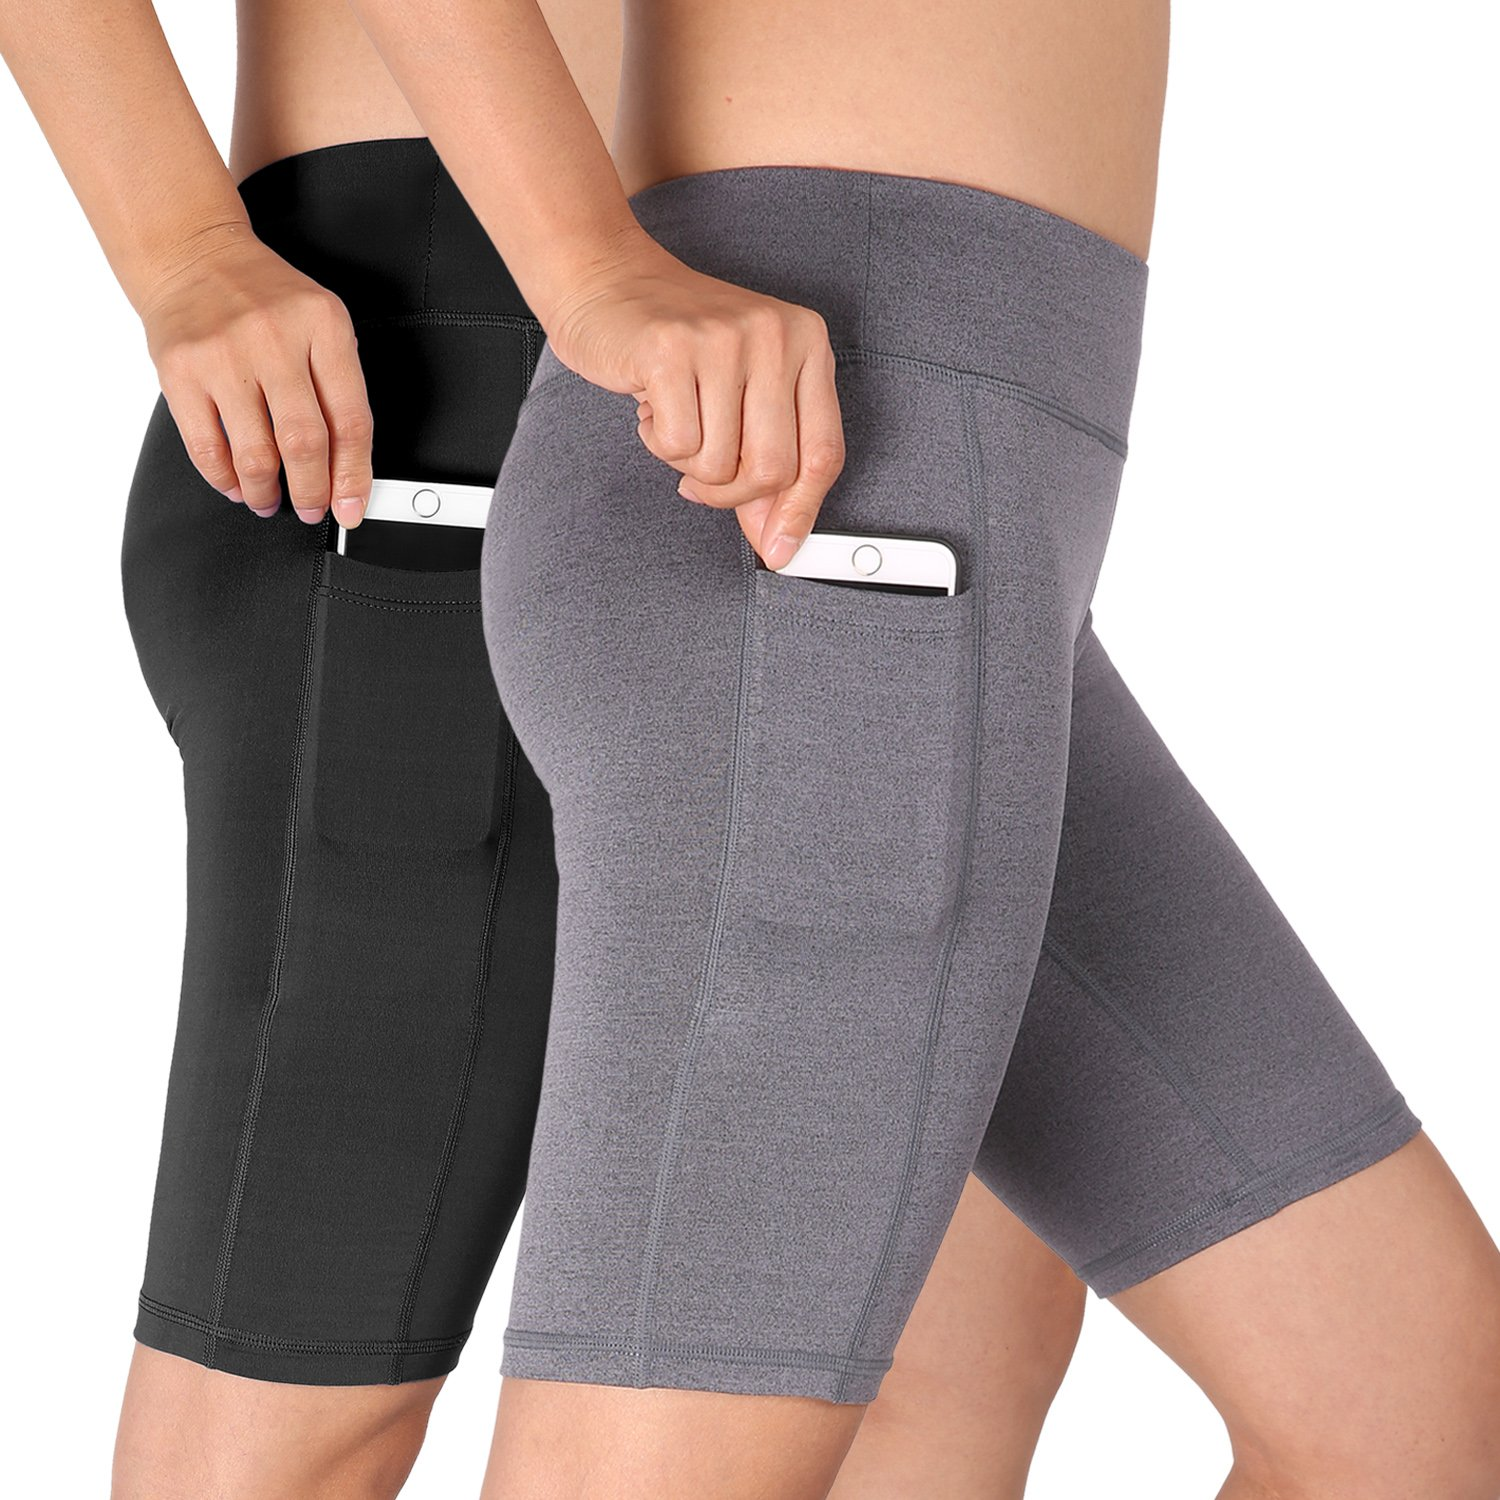 Cadmus Women's High Waist Athletic Running Workout Shorts with Pocket,2 Pack,06,Black,Grey,Small